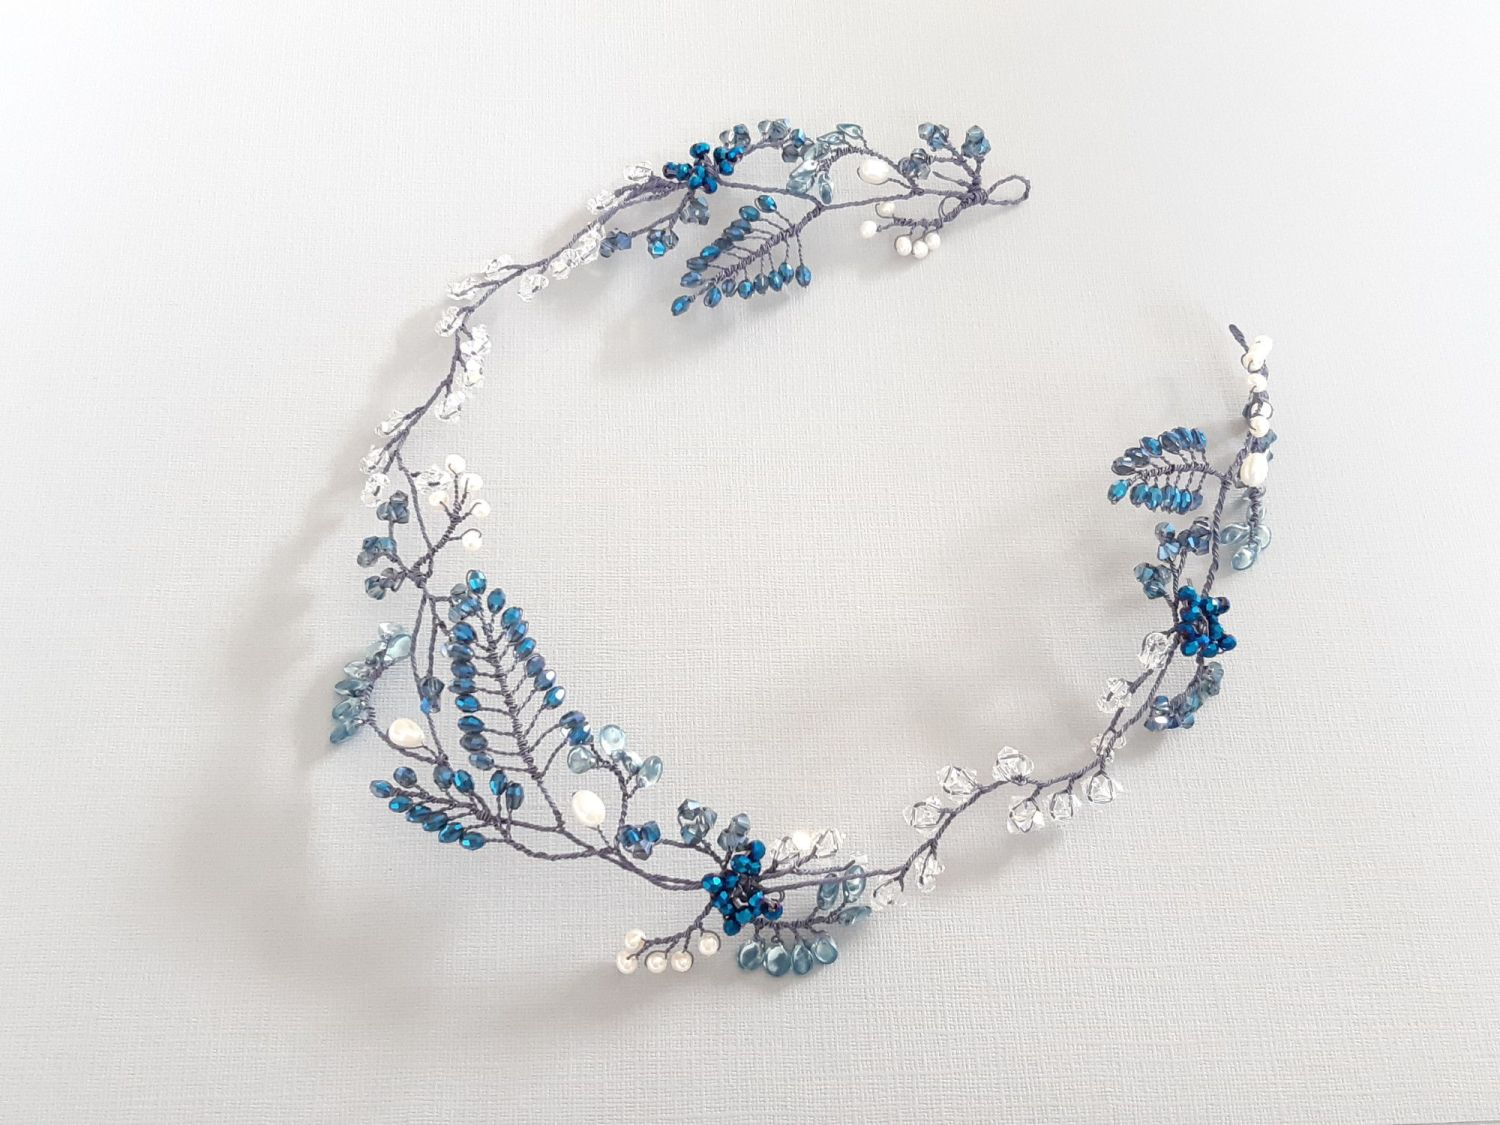 Handmade blue and white floral bridal headpiece-Gloucestershire-UK-Cleopatr